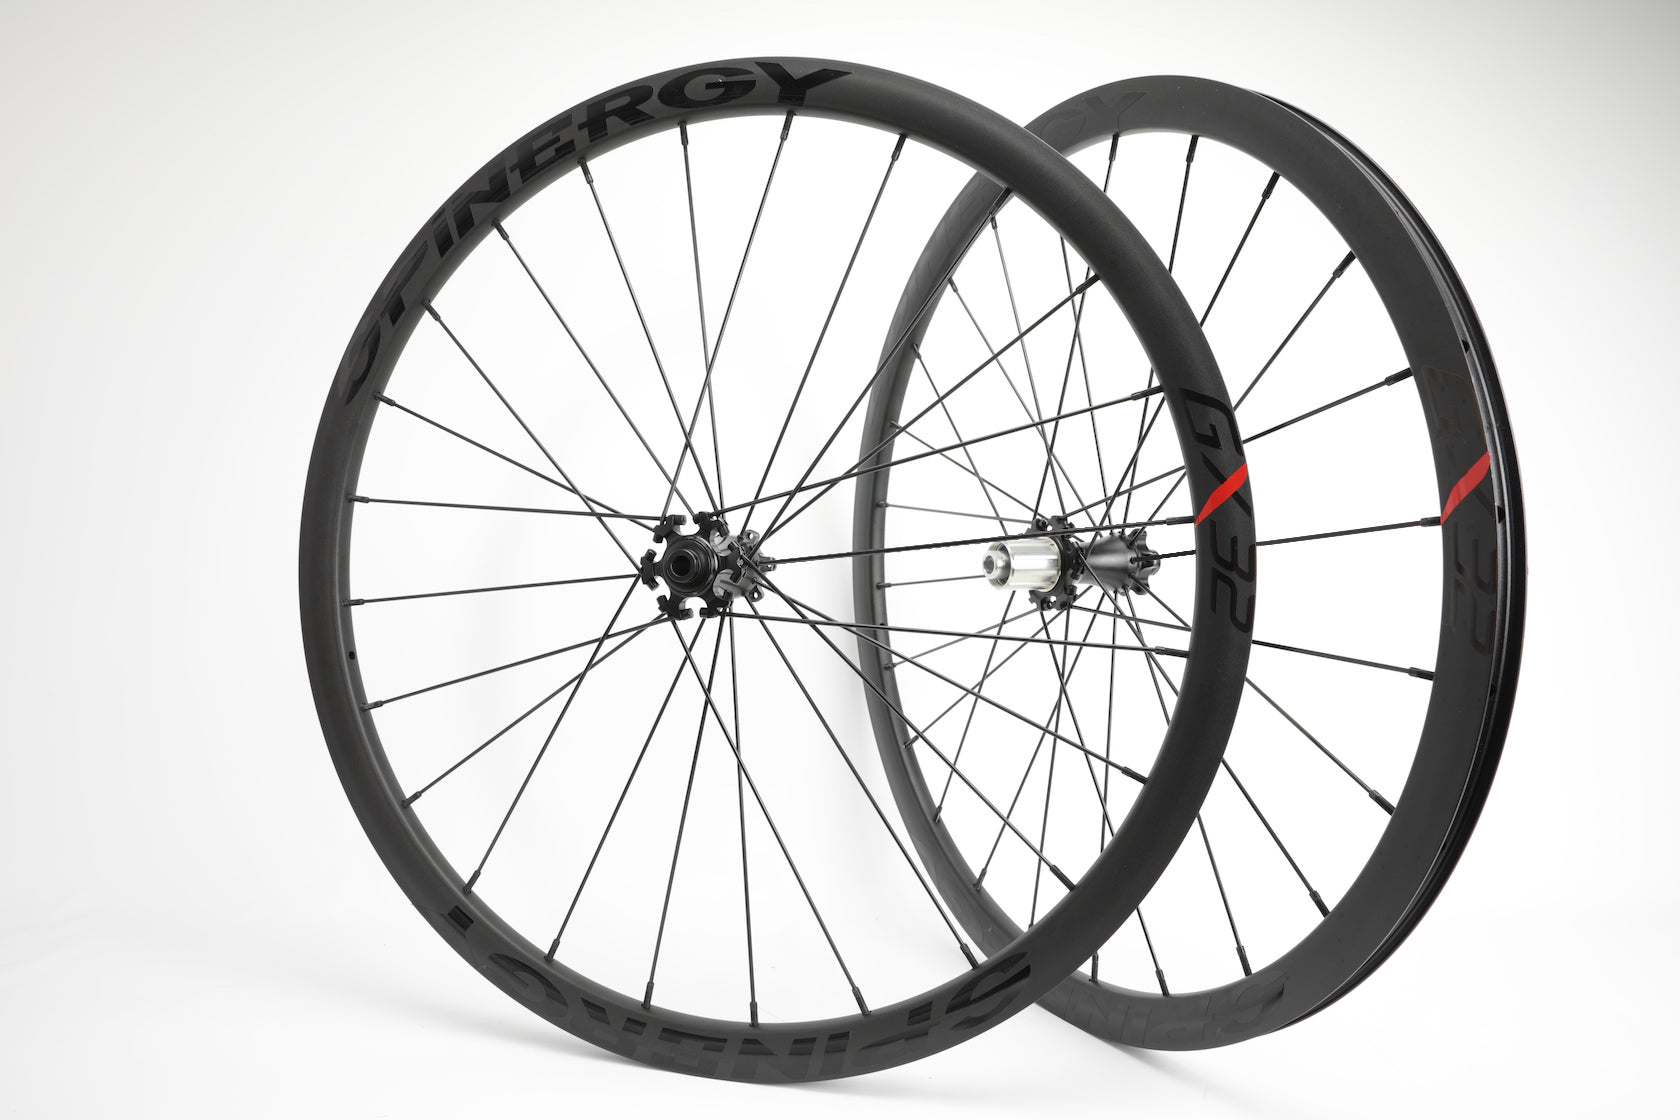 SPINERGY GX32 ALLOY GRAVEL DISC WHEELSET